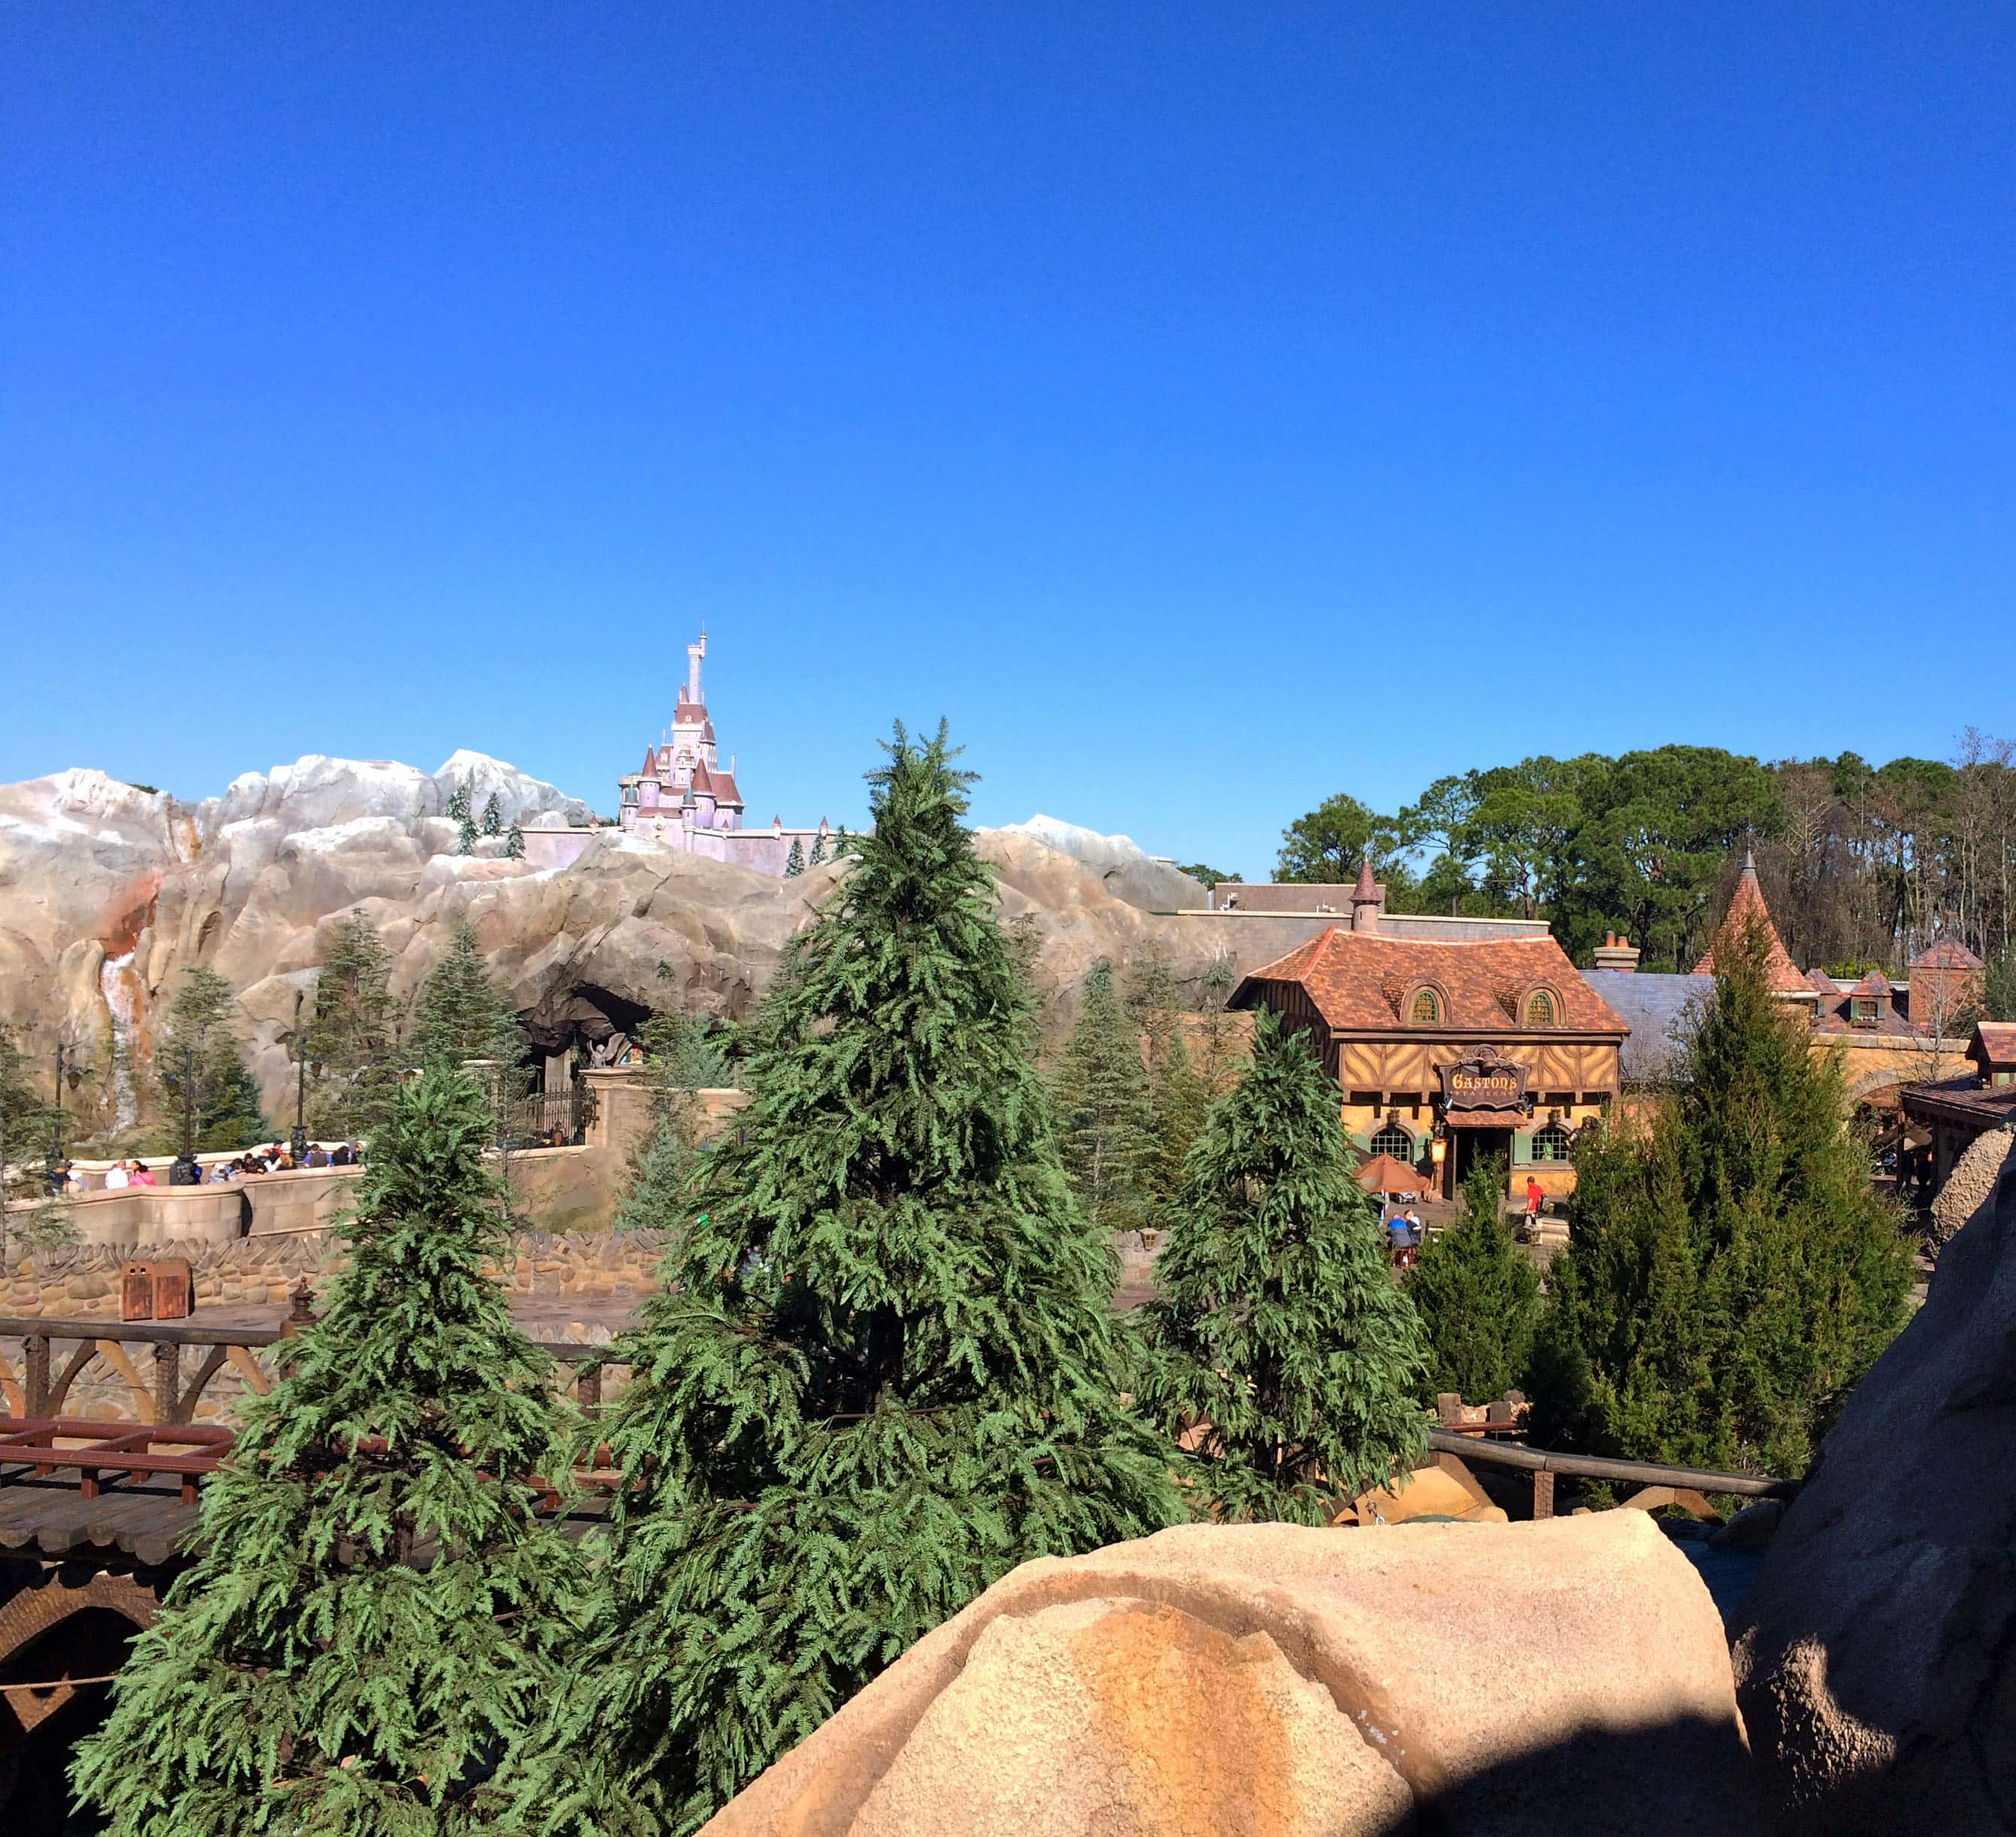 All in the Details: The View From the Top of Seven Dwarfs Mine Train at Magic Kingdom Park